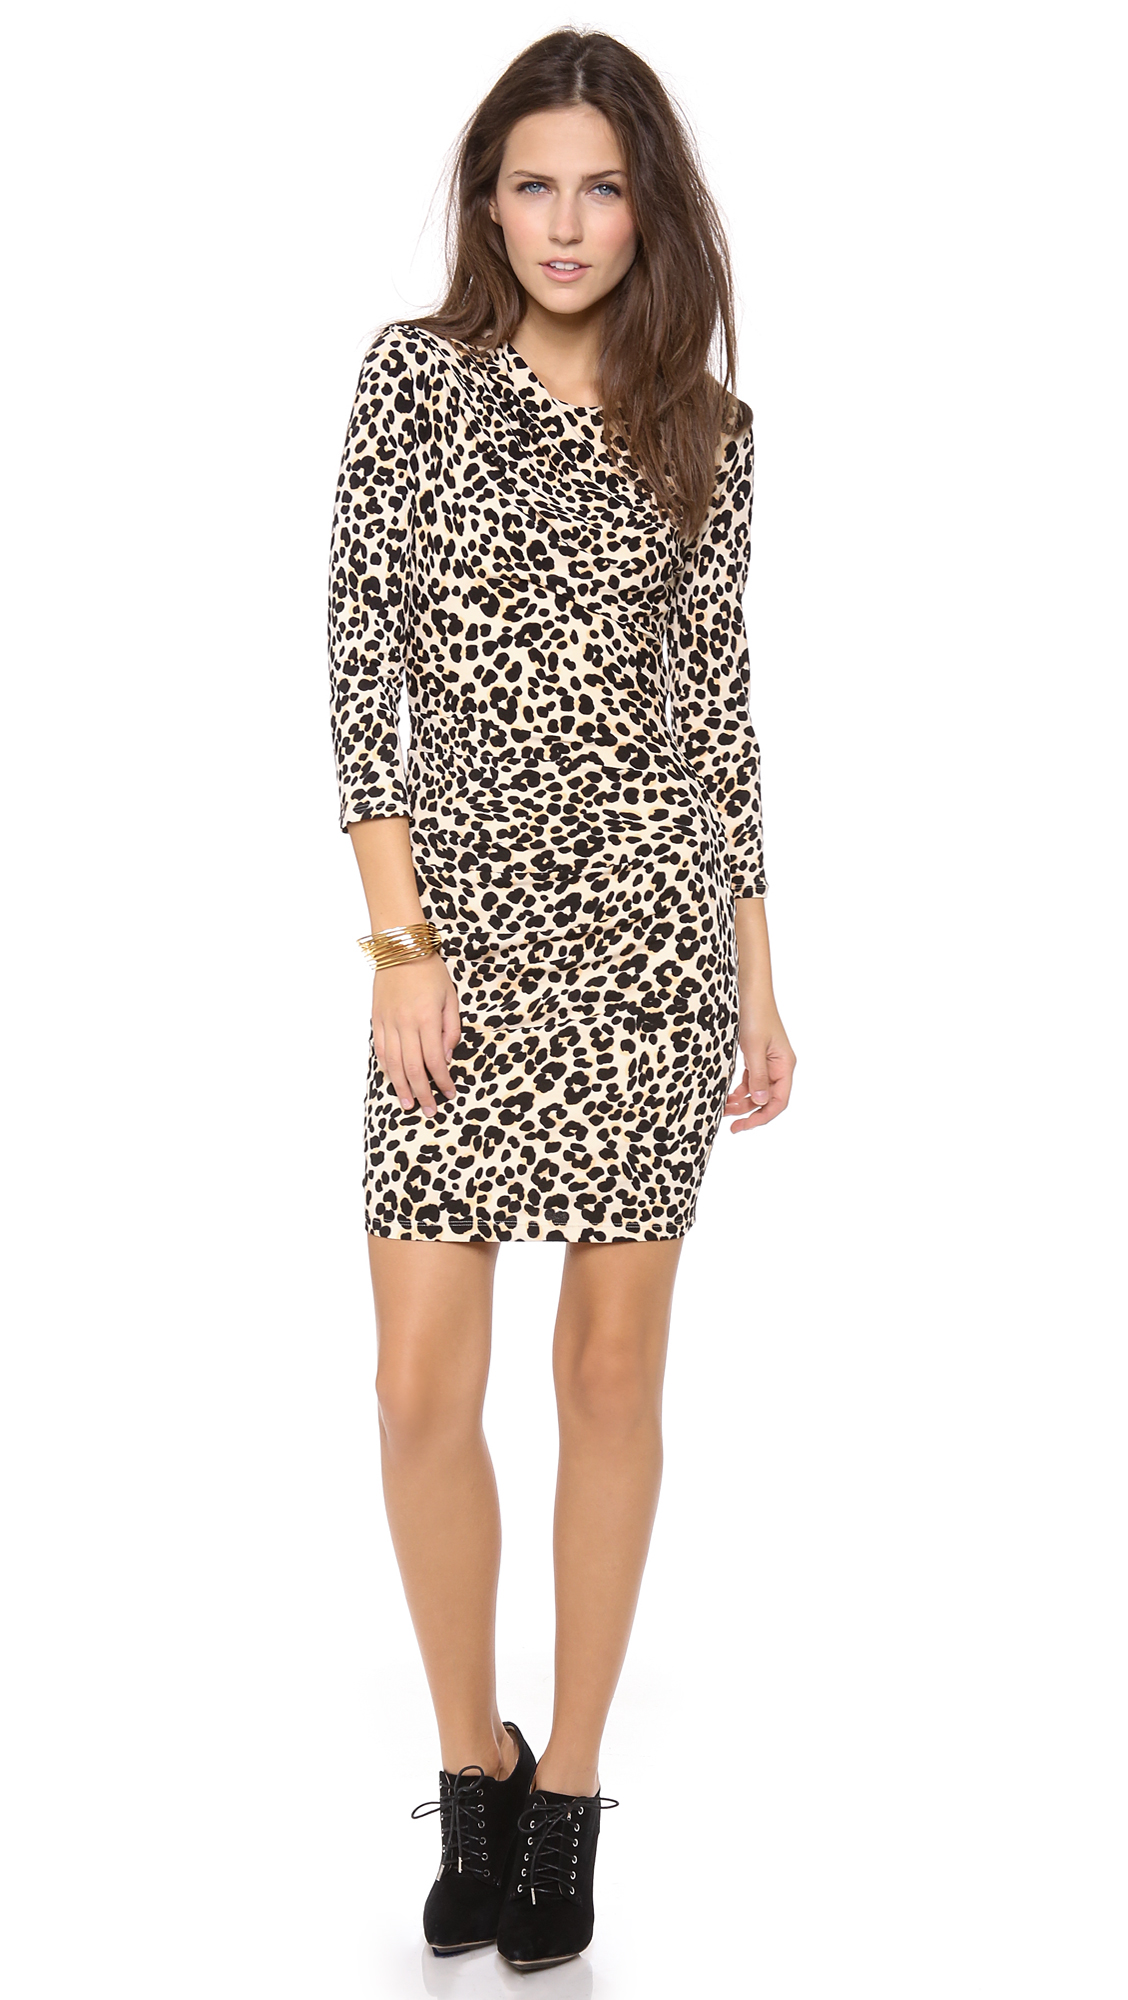 Lyst - Juicy Couture King Cheetah Dress